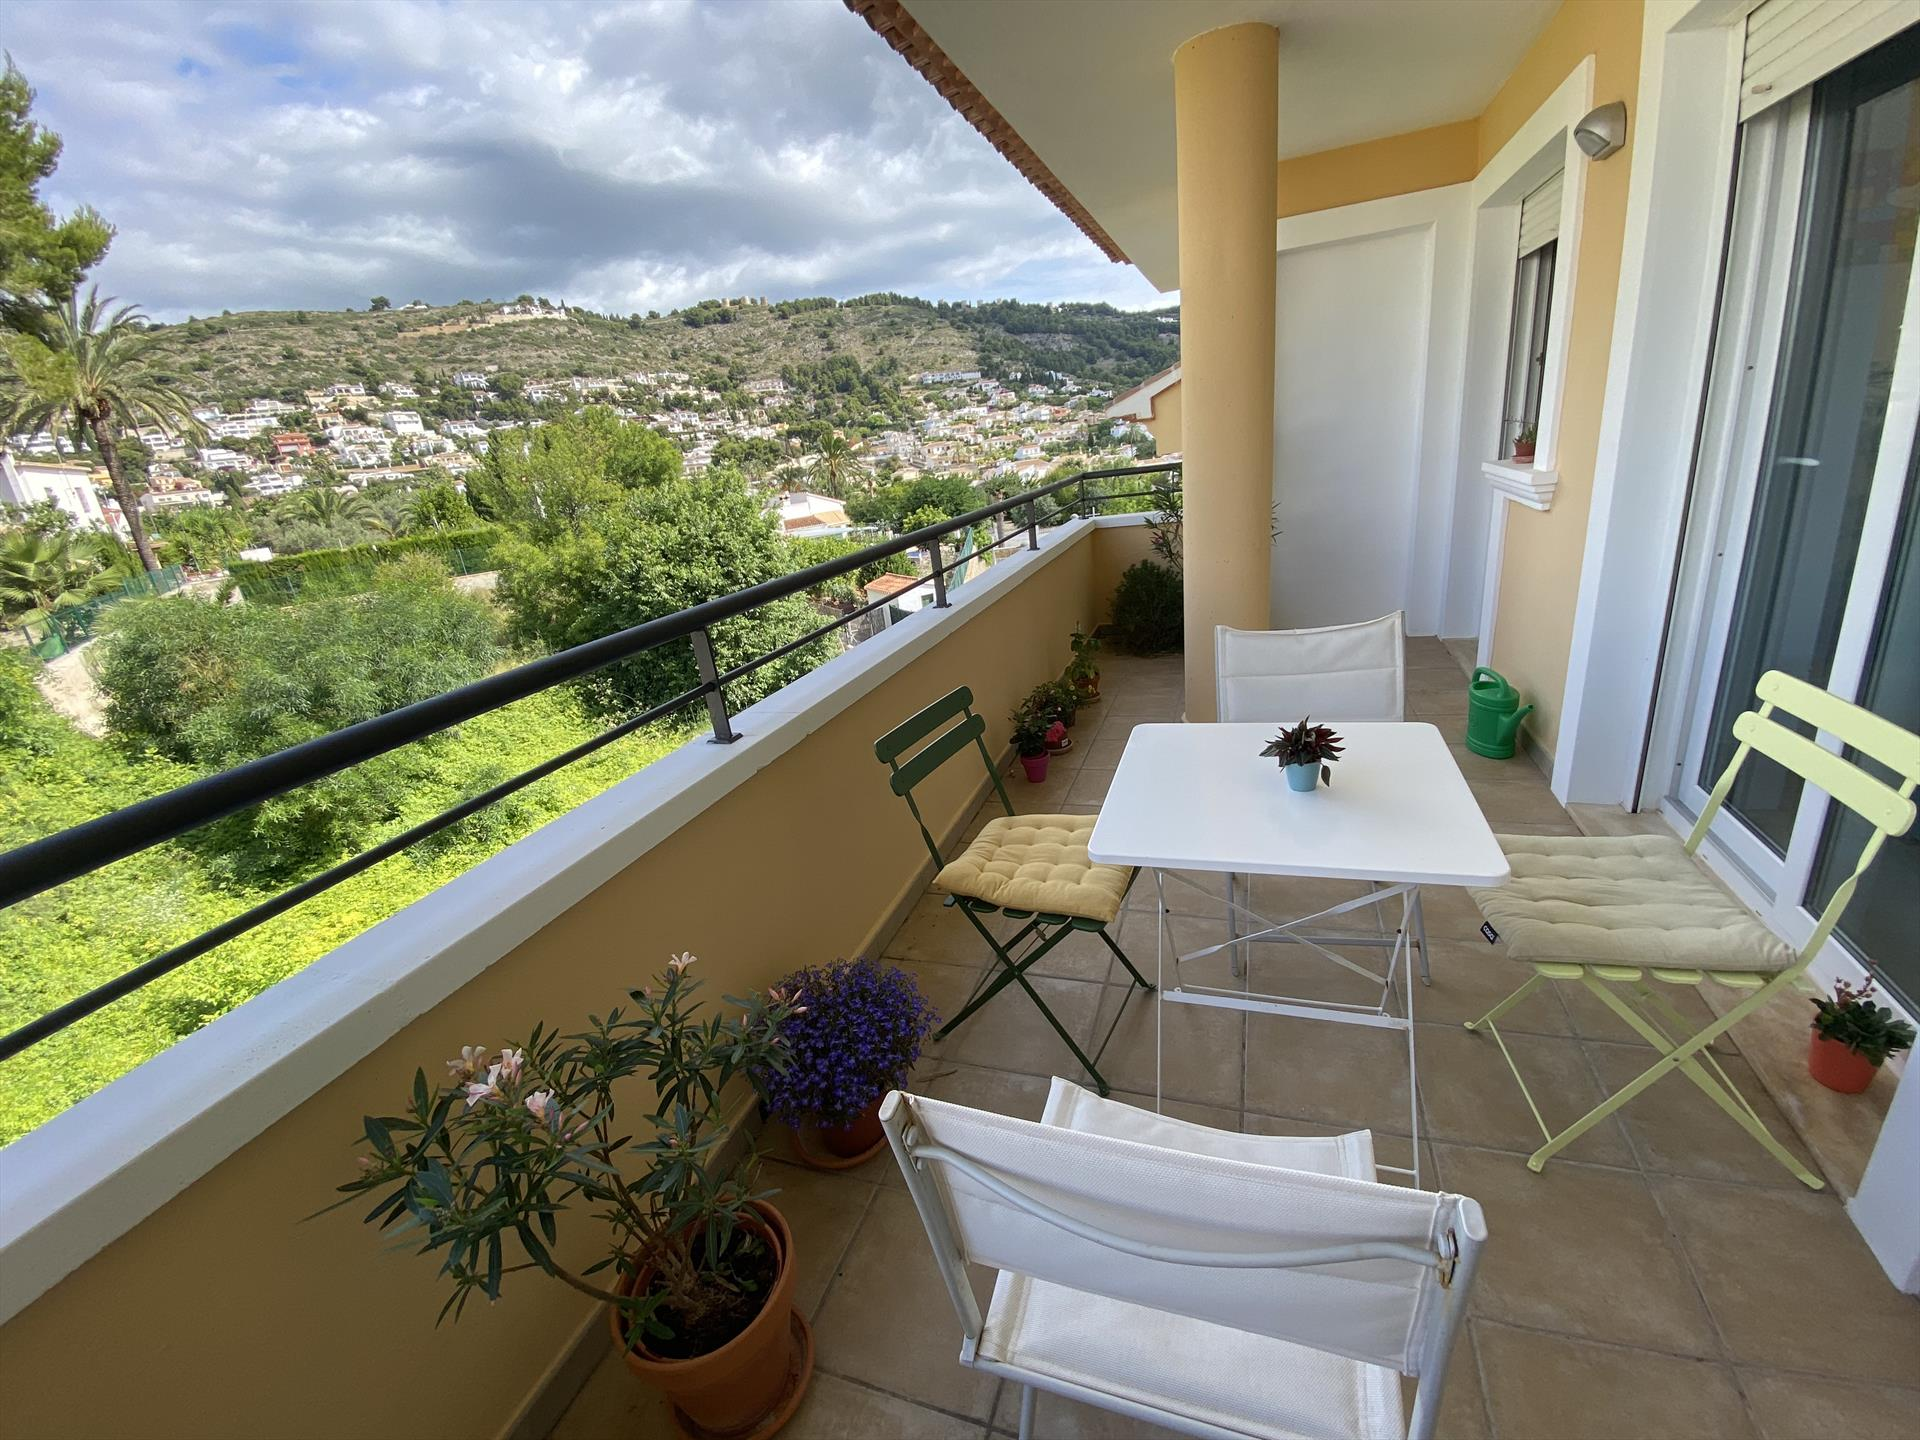 Santa Barbara,Beautiful and comfortable apartment in Javea, on the Costa Blanca, Spain for 4 persons. The apartment is situated in a coastal.....